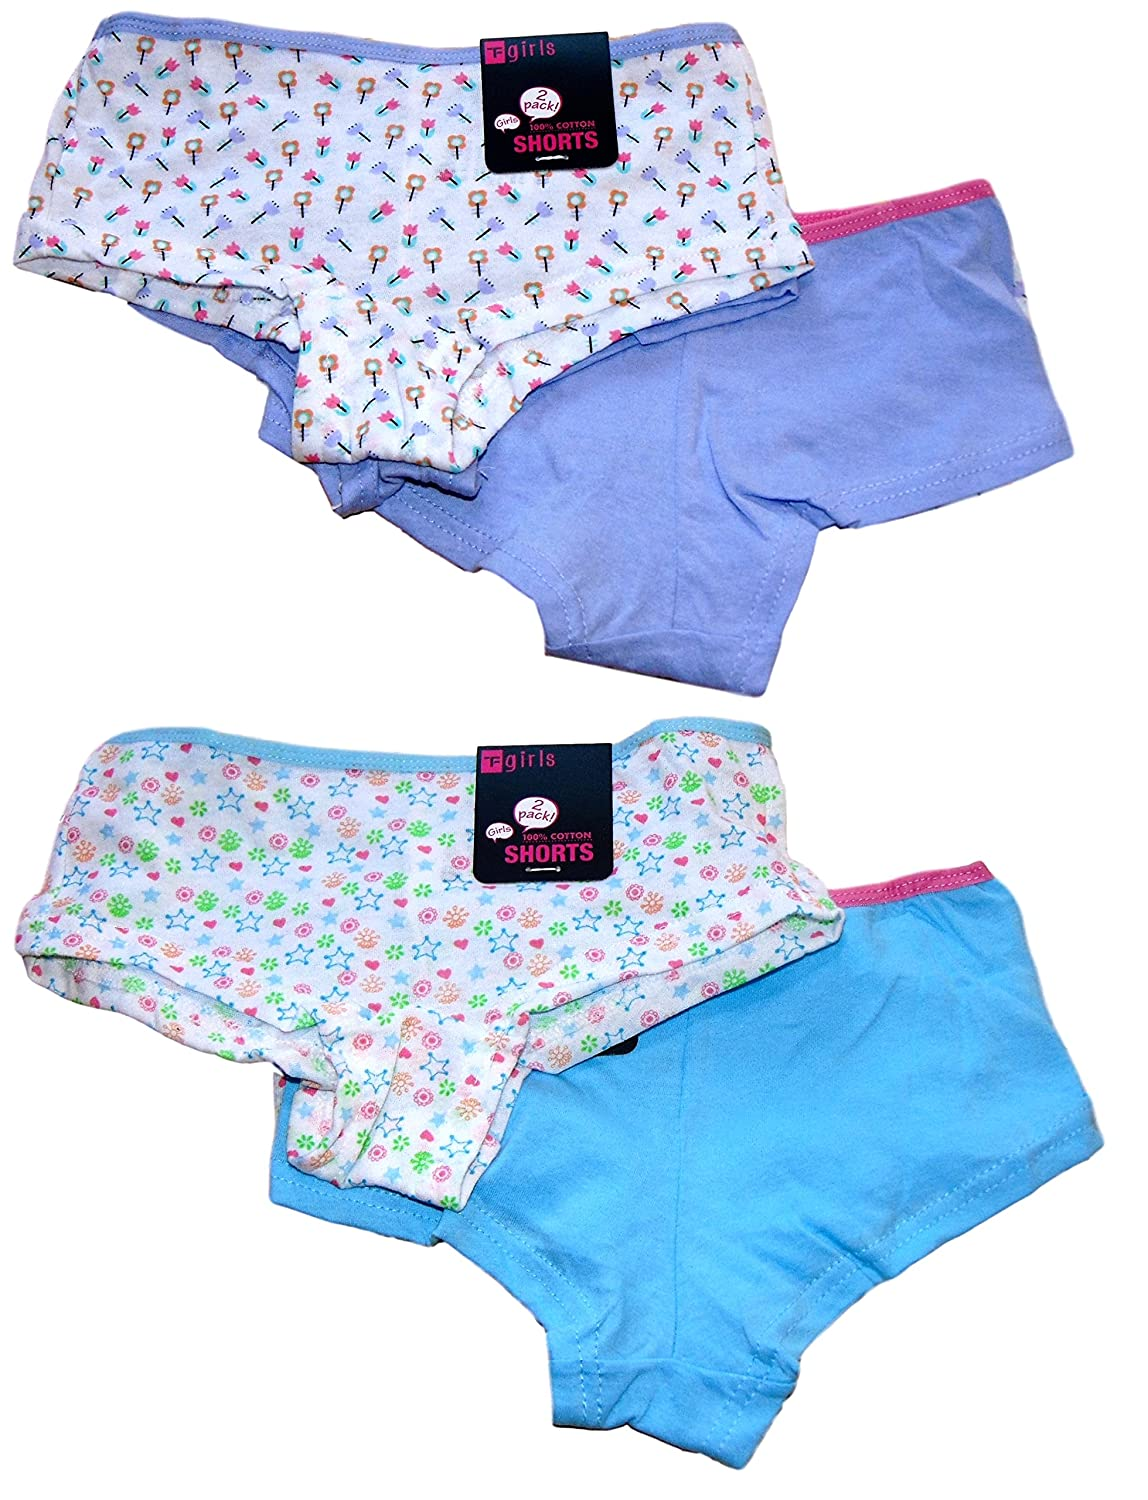 *New in* 4 Pairs Girls 100% Cotton Boxers Boyshorts Knickers Ages 5-12 Years BR222